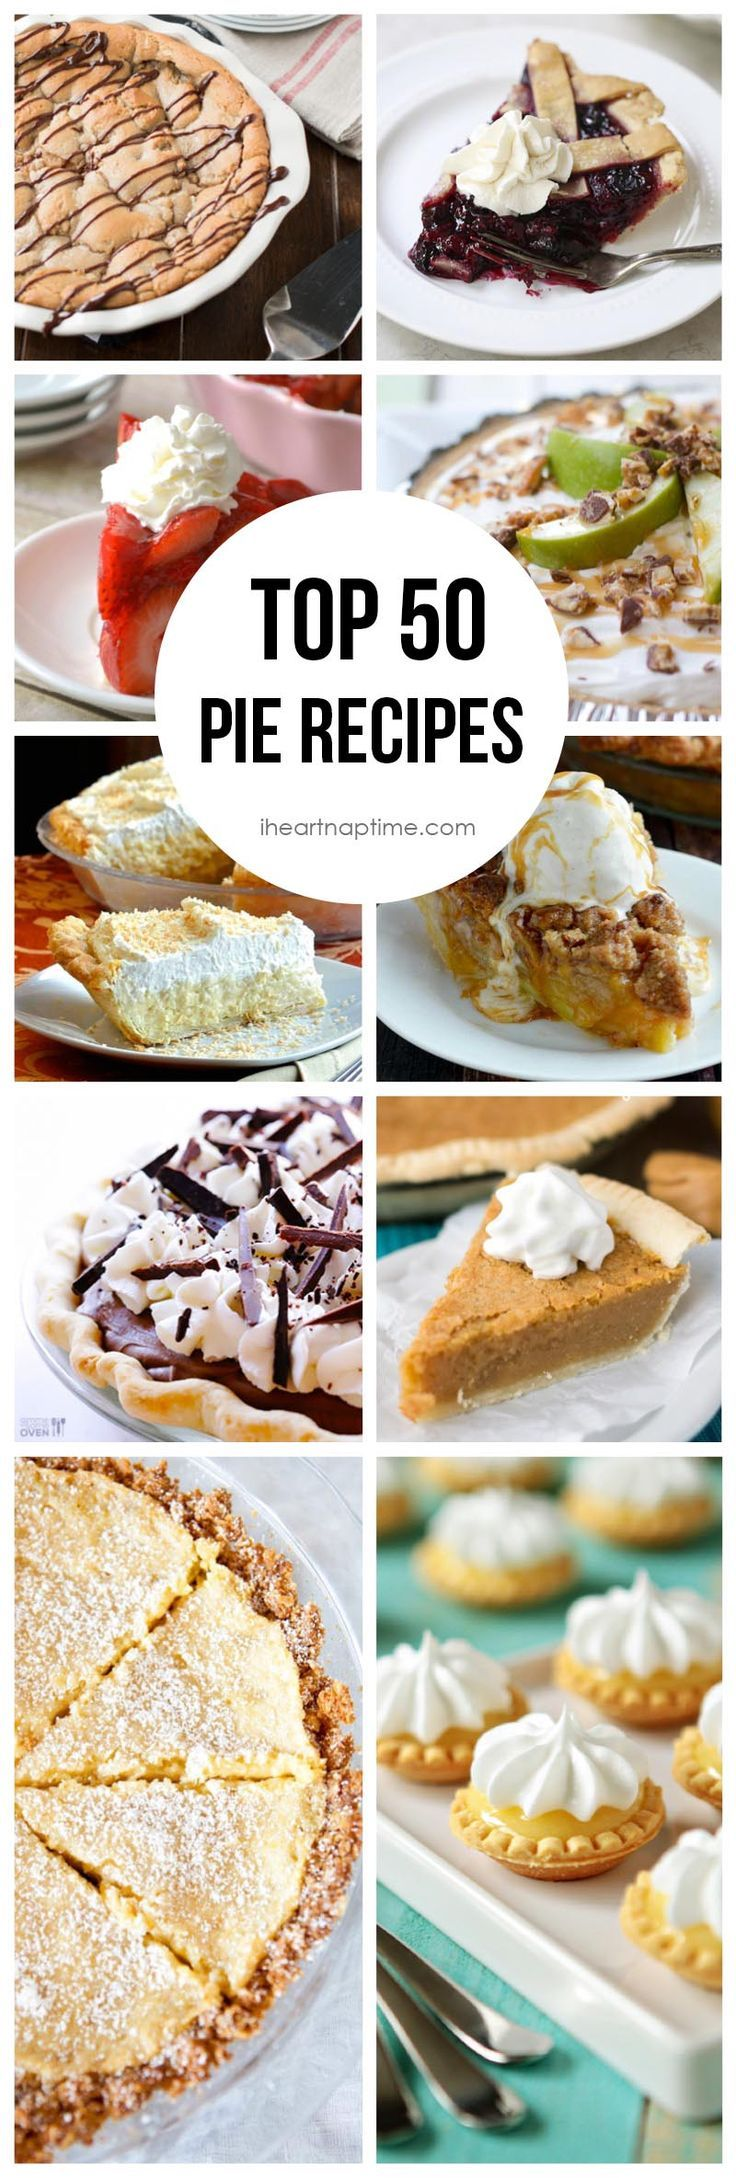 Top 50 pie recipes featured on iheartnaptime.com -a dessert for everyone on Thanksgiving!